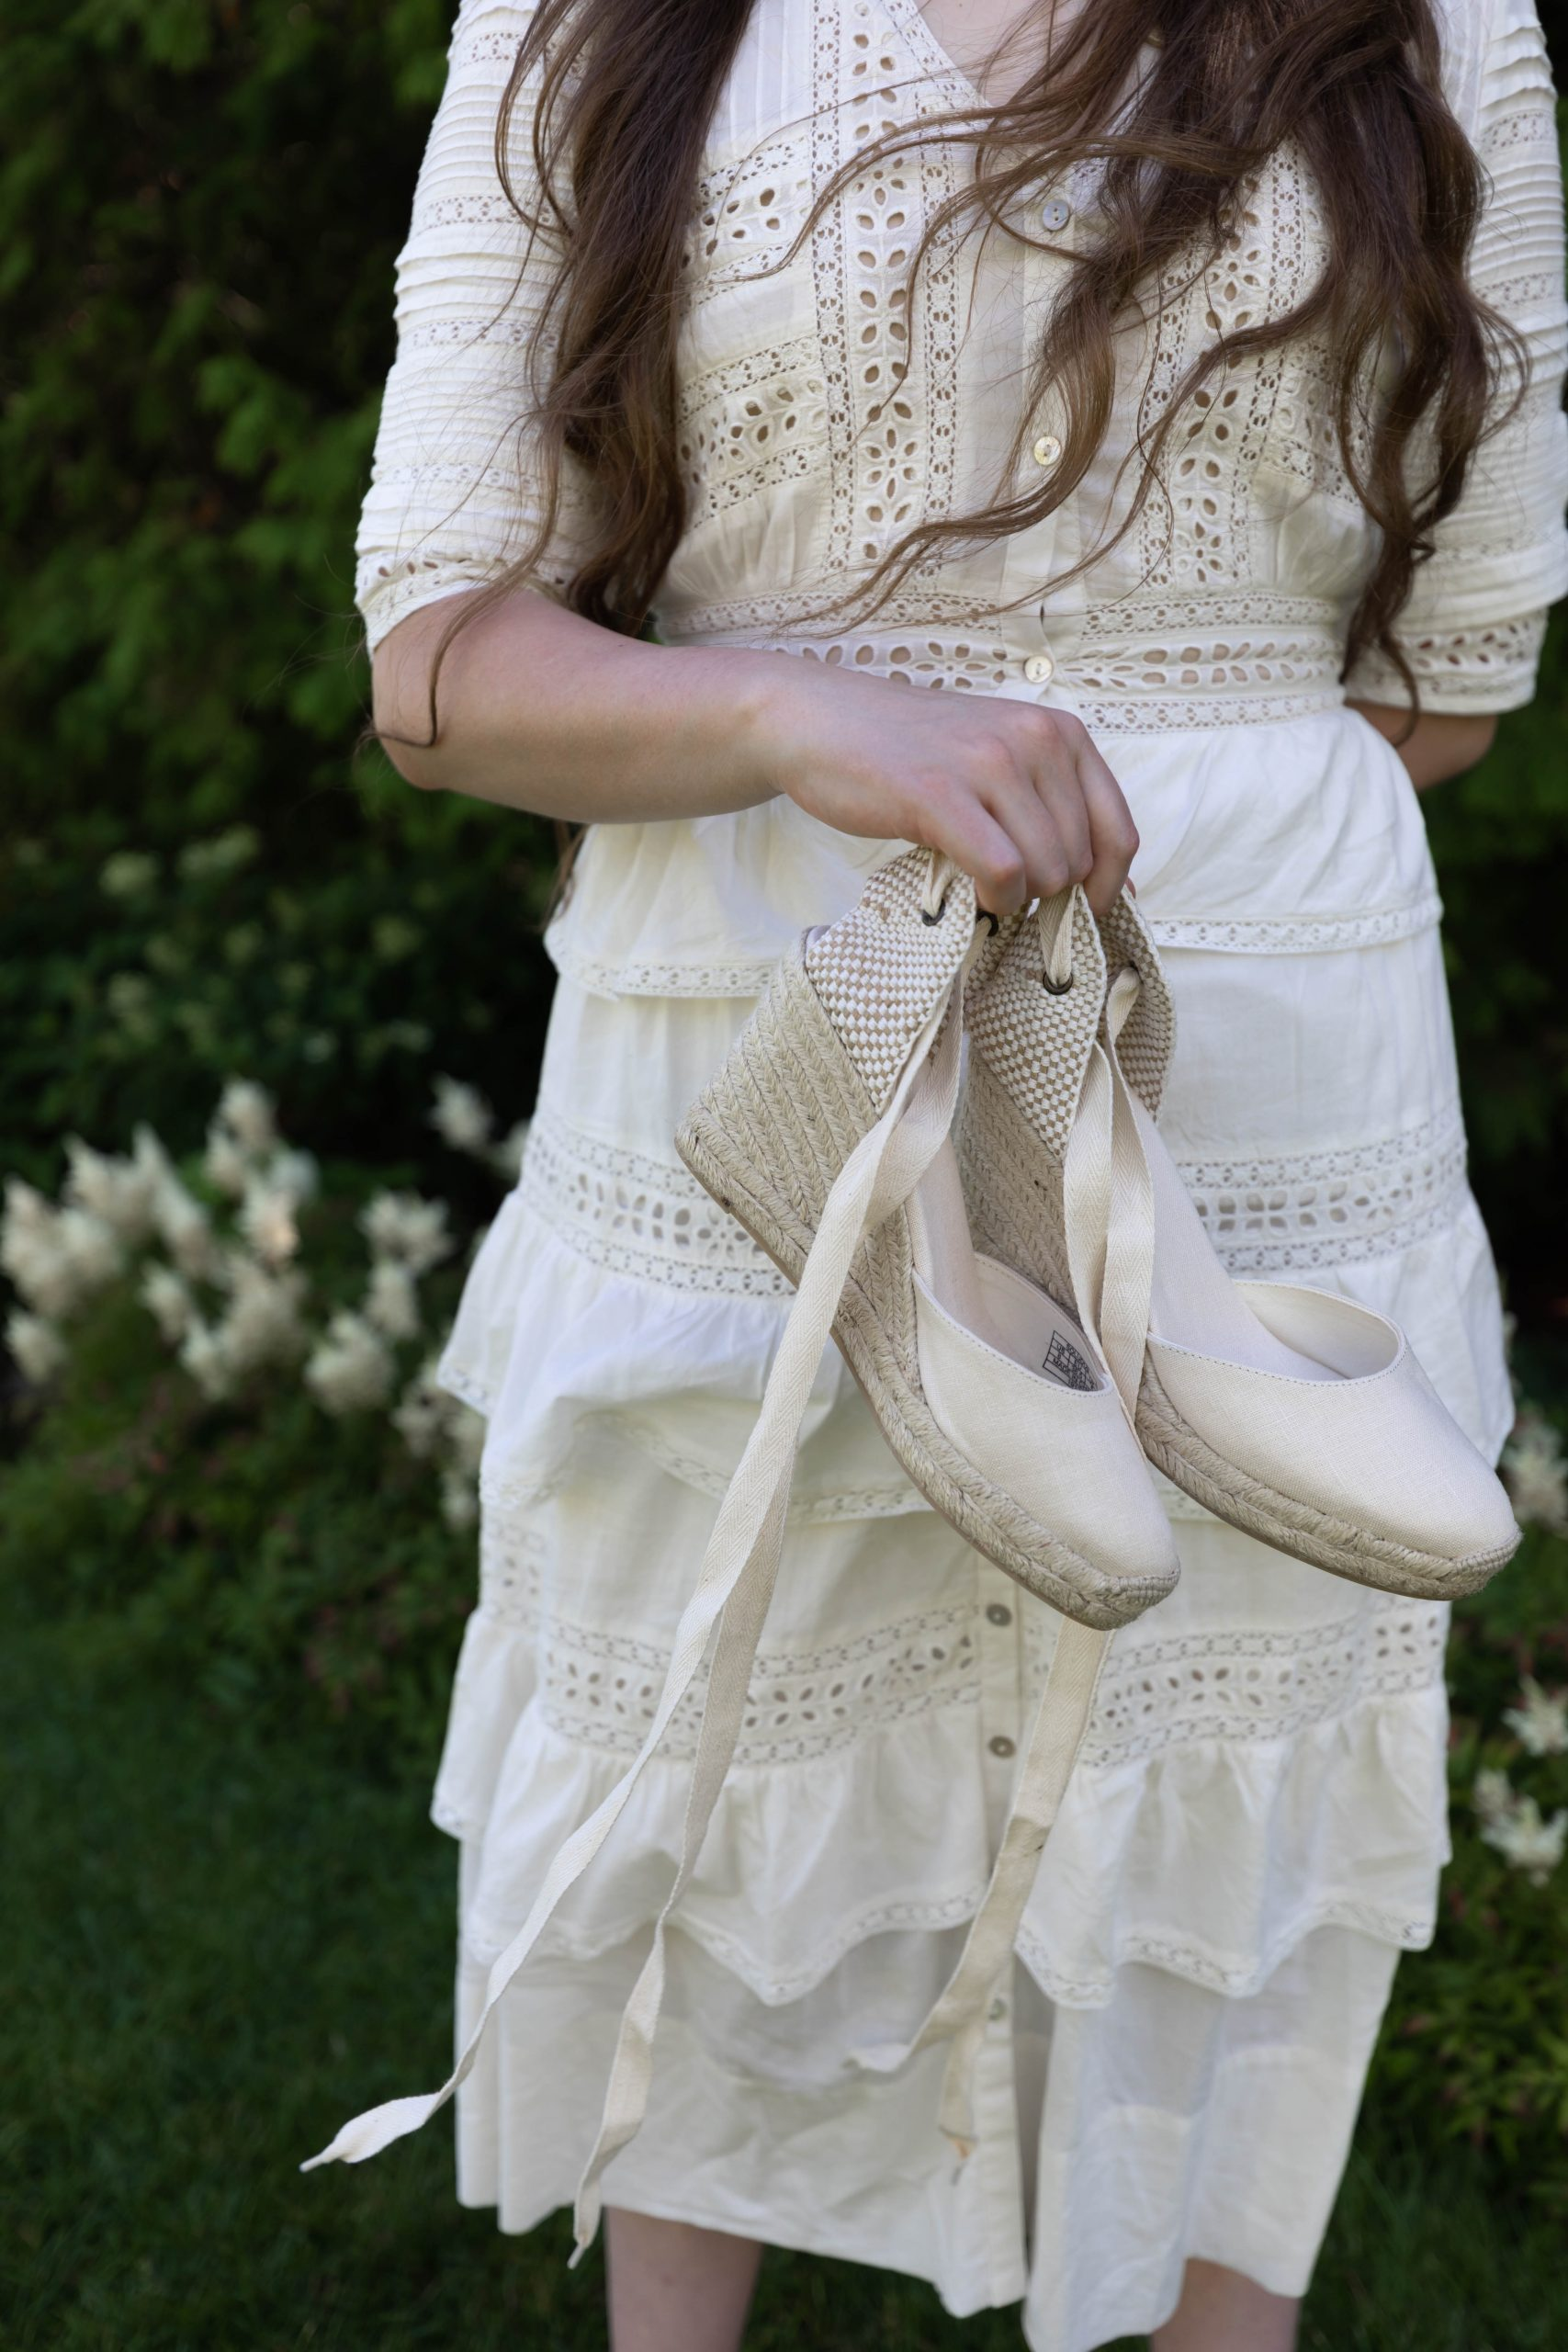 LoveShackFancy Dress Soludos Espadrilles and Brown Straw Hat